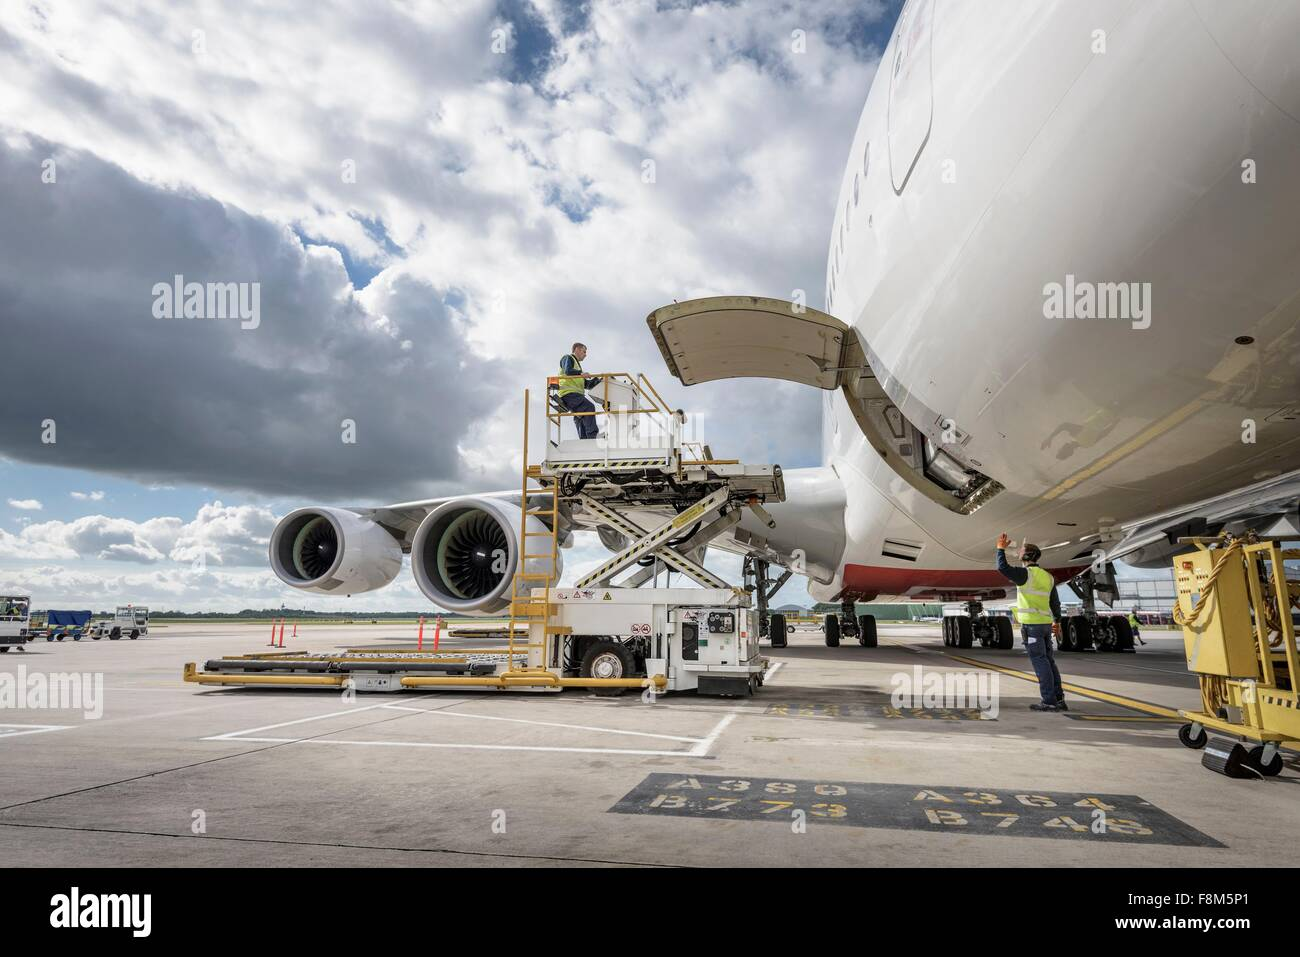 Freight handling machinery with A380 aircraft - Stock Image